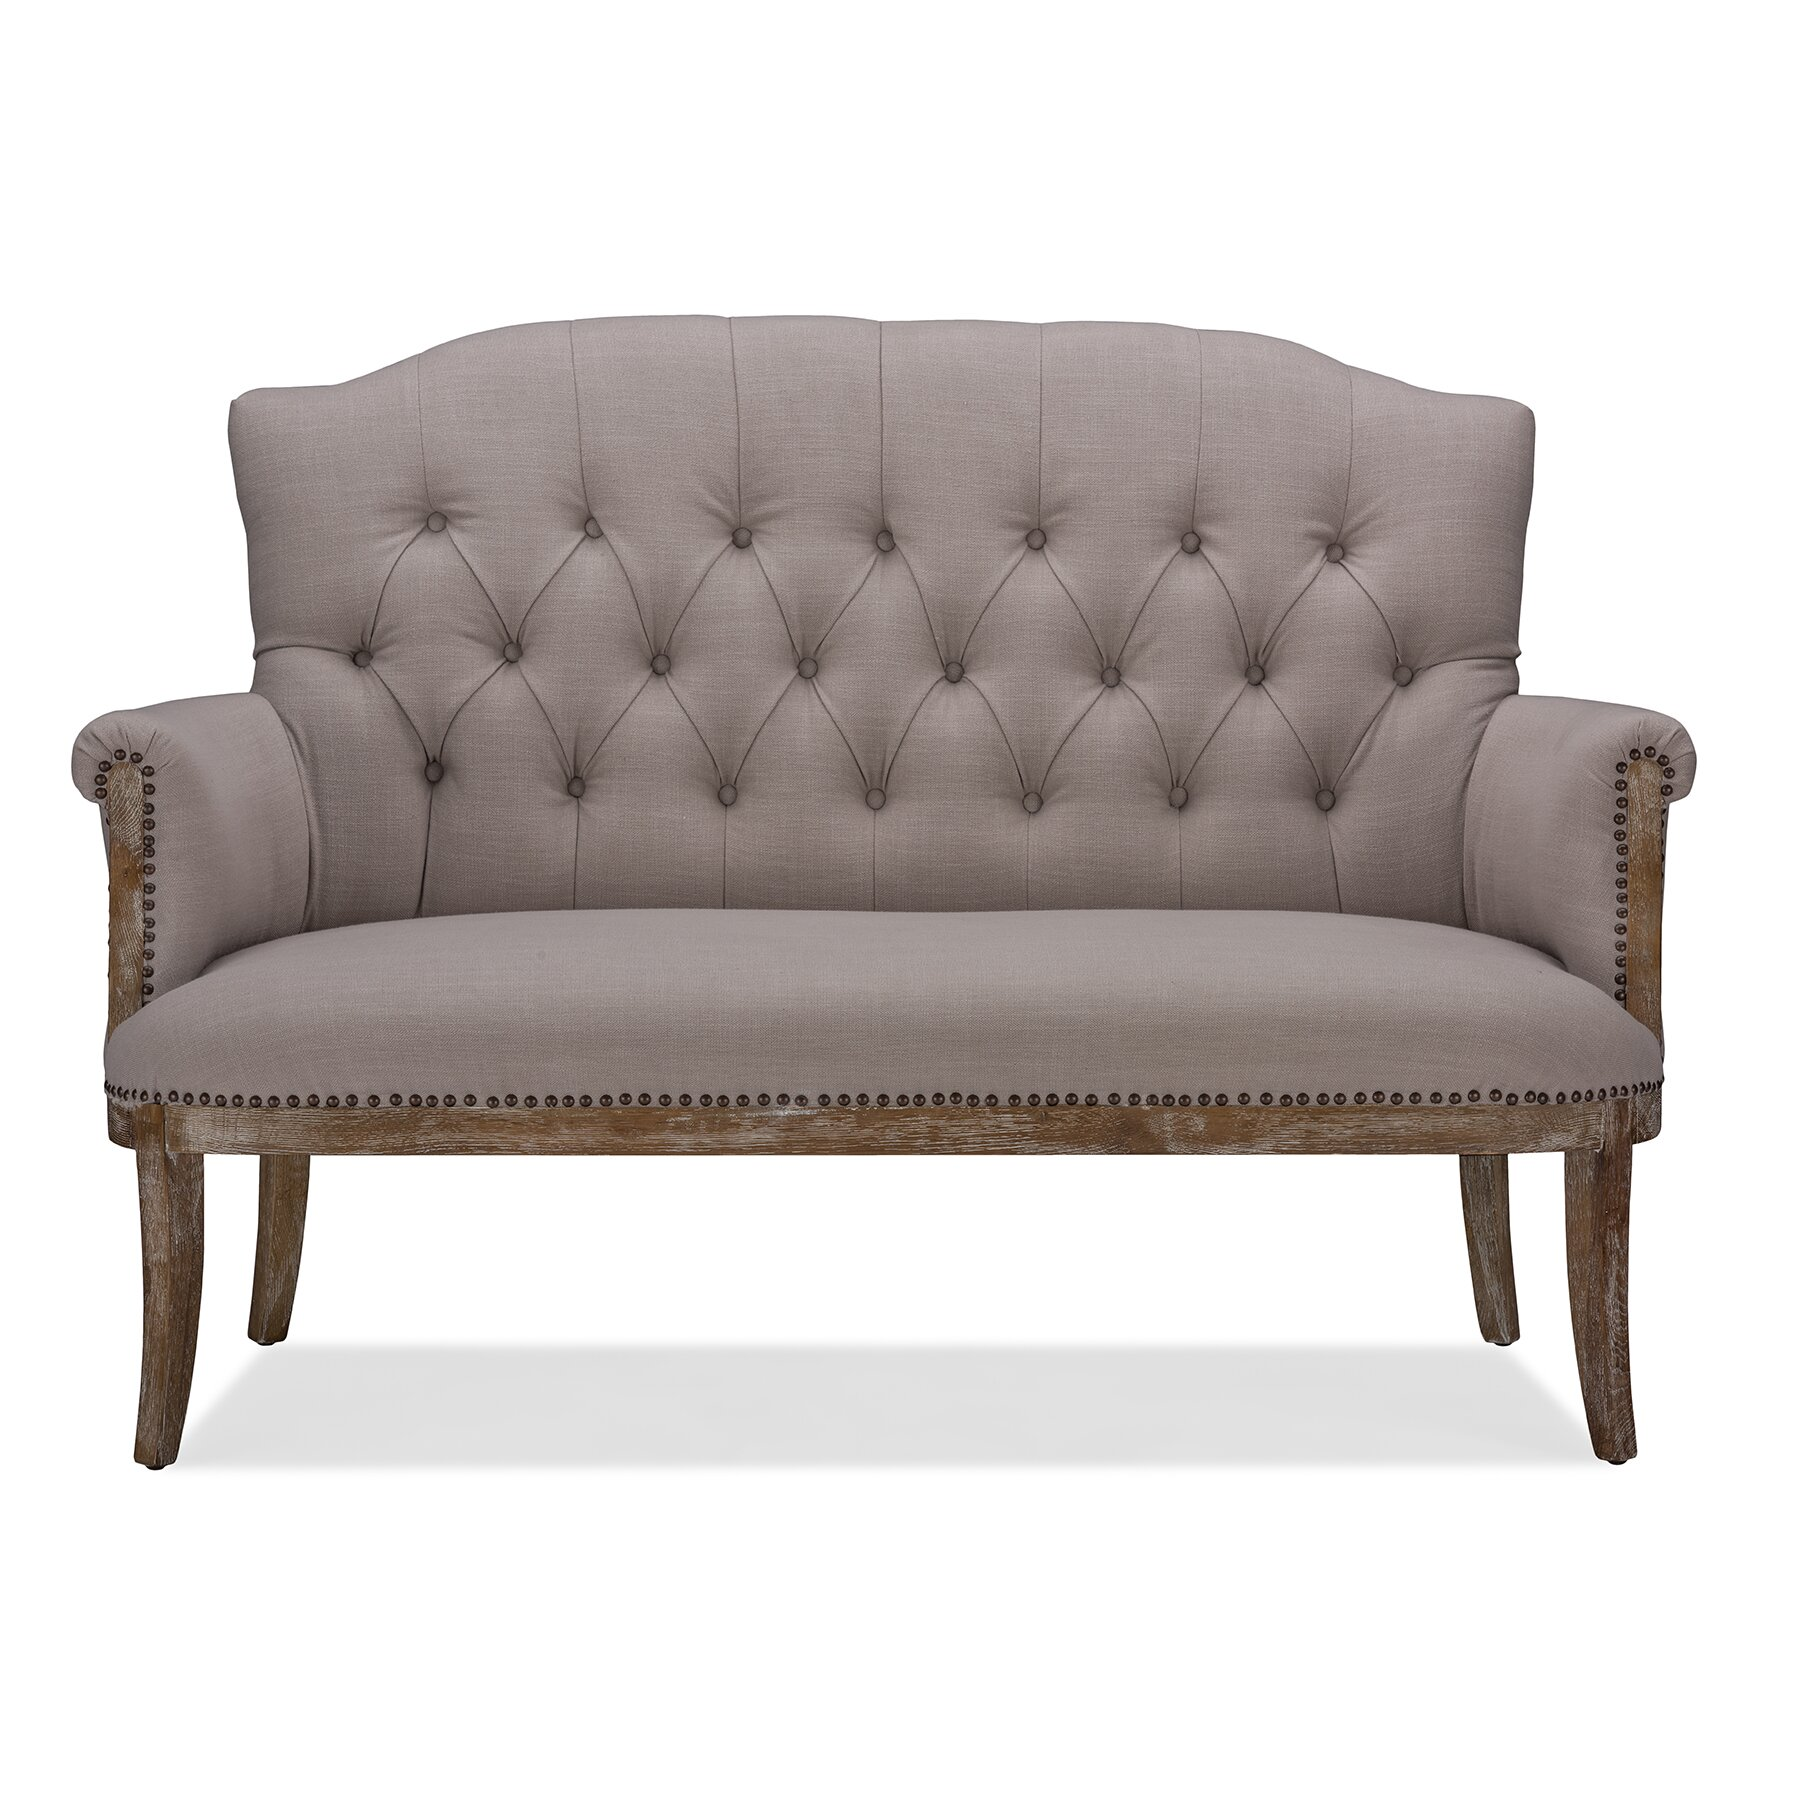 Wholesale Interiors Bria Tufted Bench Reviews Wayfair